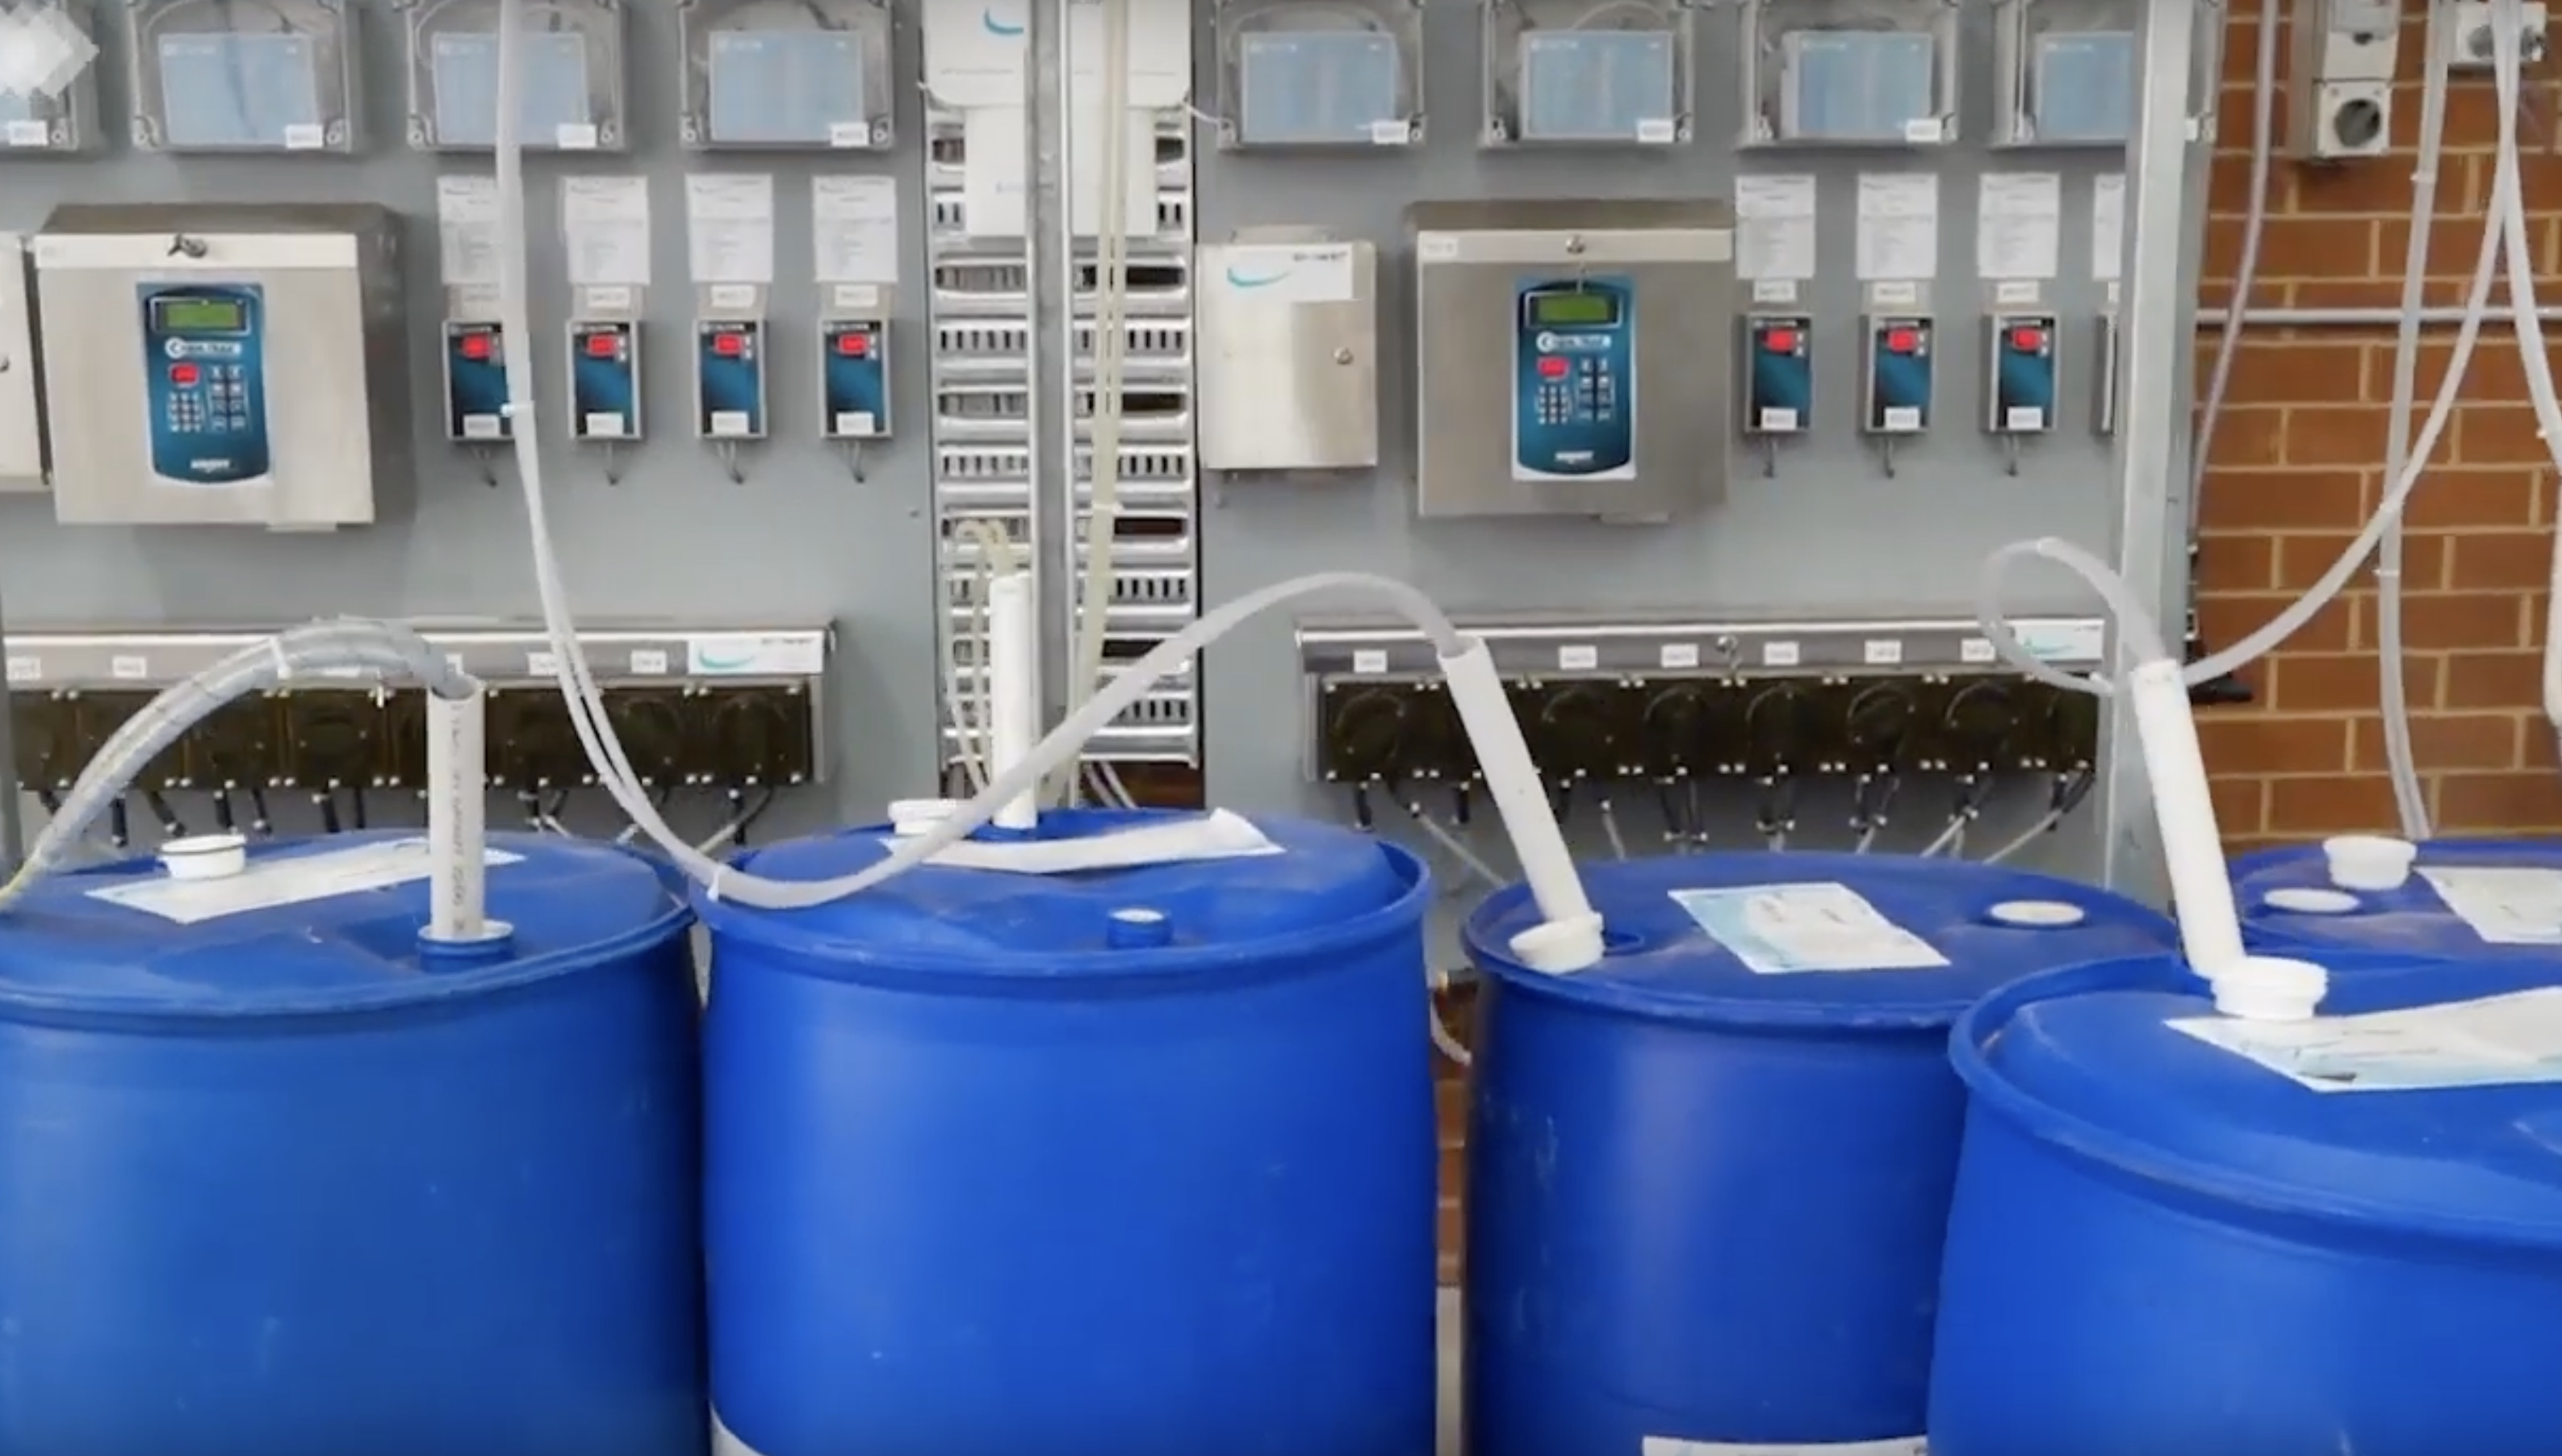 Laundry : How do you future proof your commercial laundry system? You ask Chempower Australia.